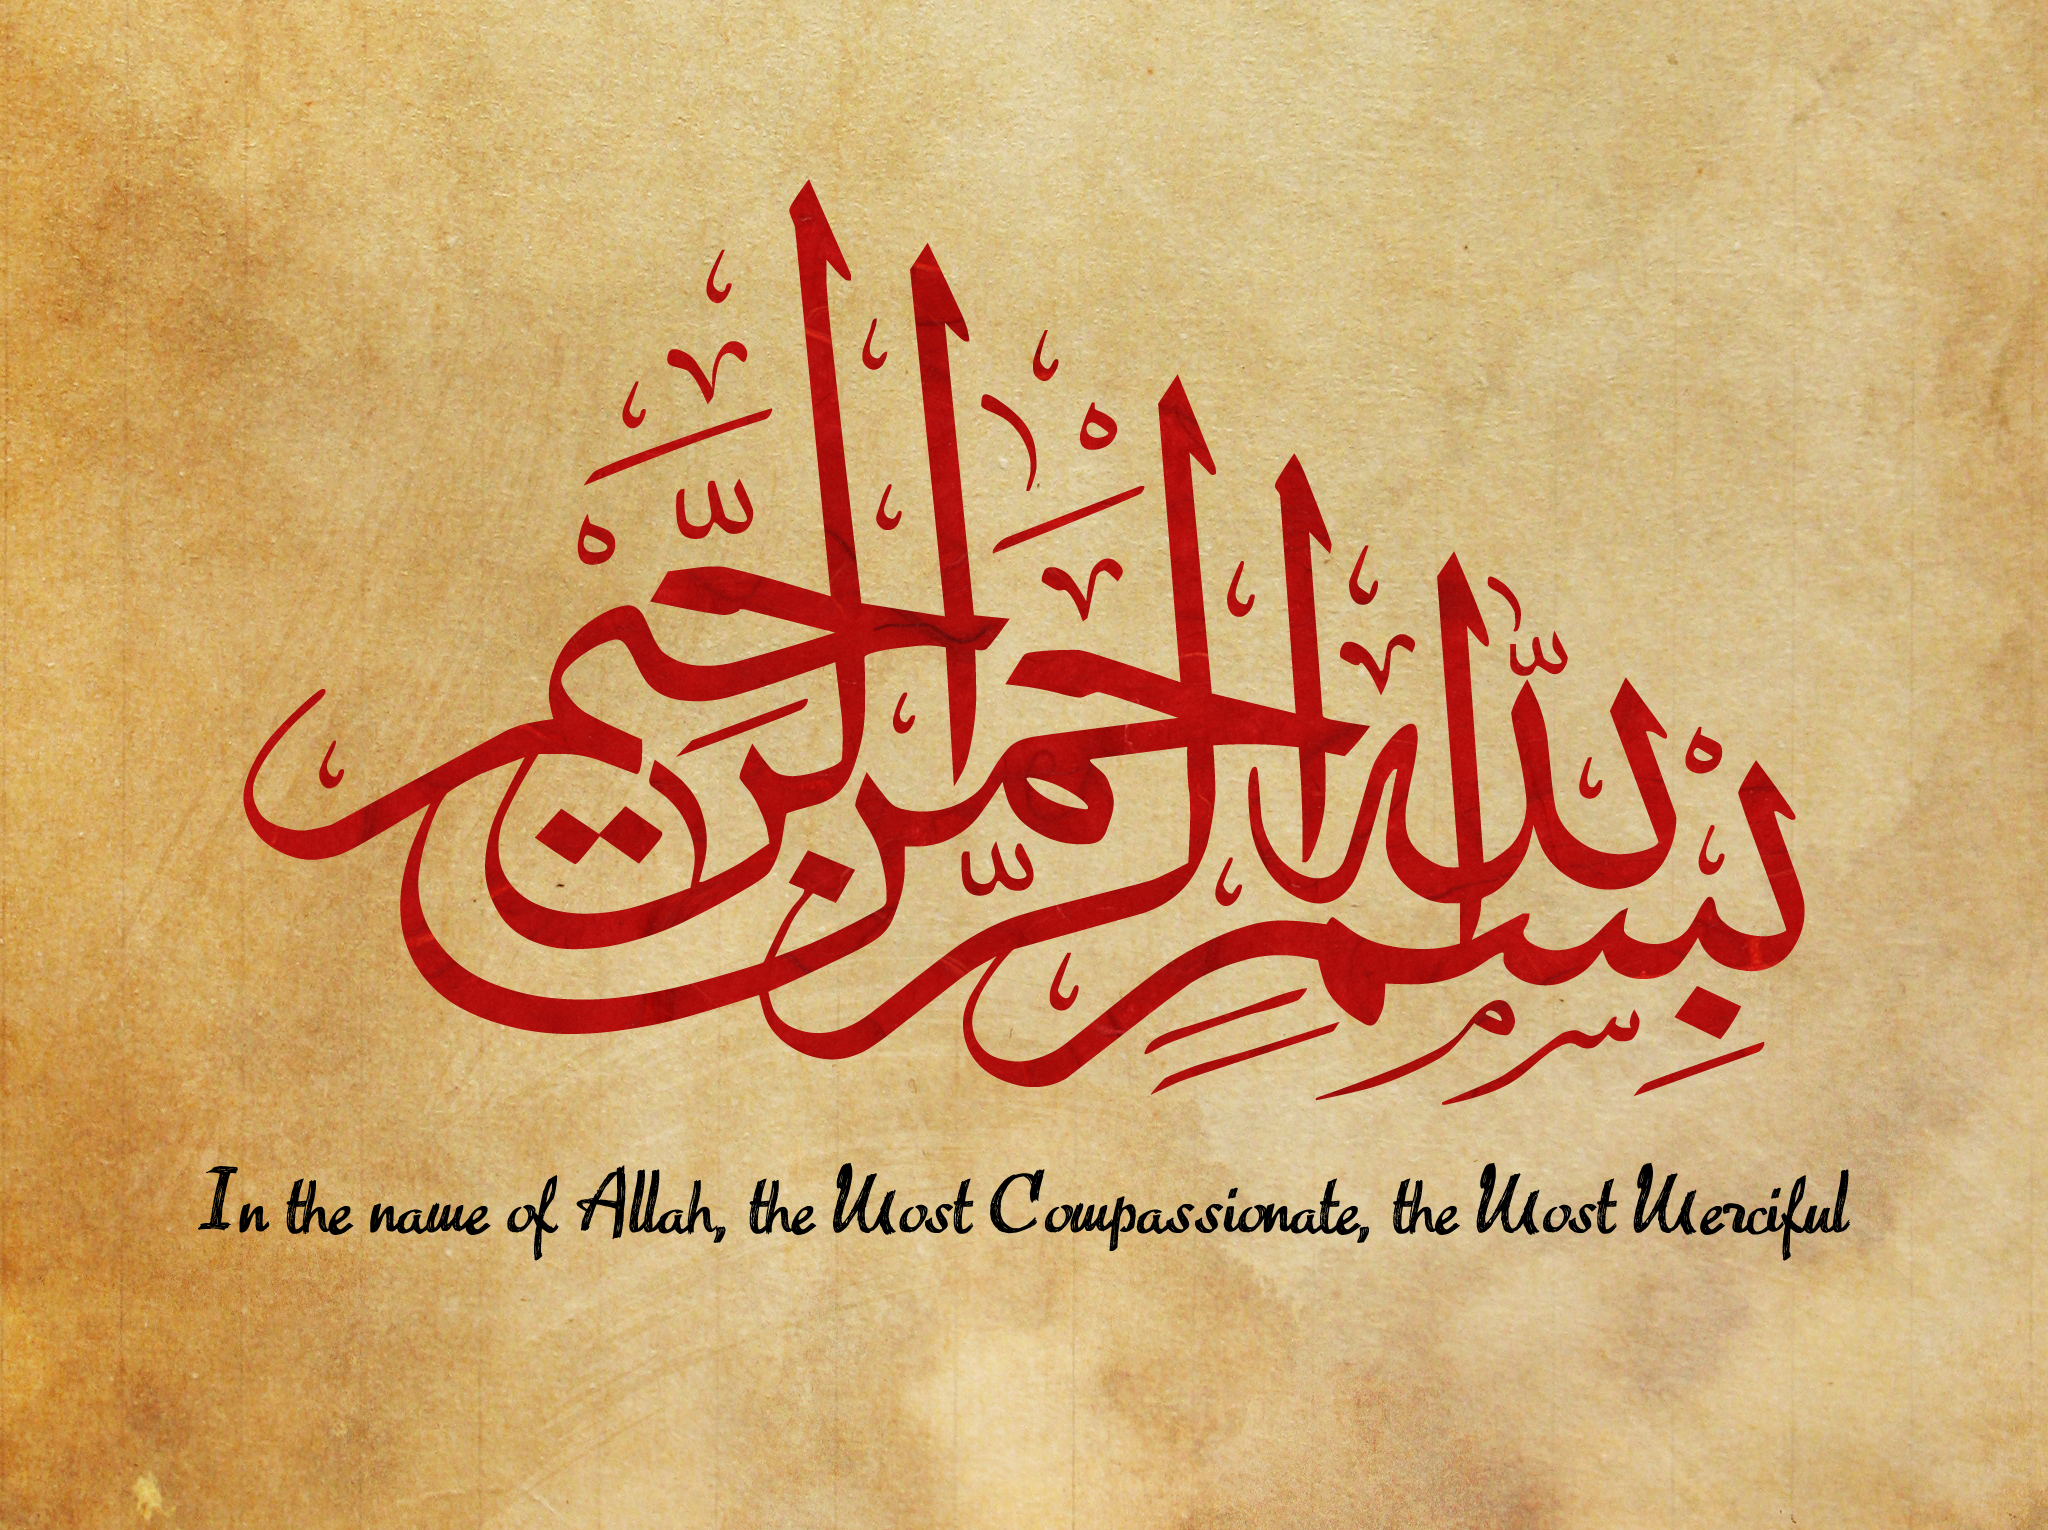 In the name of Allah, the most Compassionate, the most Merciful | Islamic  art calligraphy, Islamic calligraphy, Arabic calligraphy